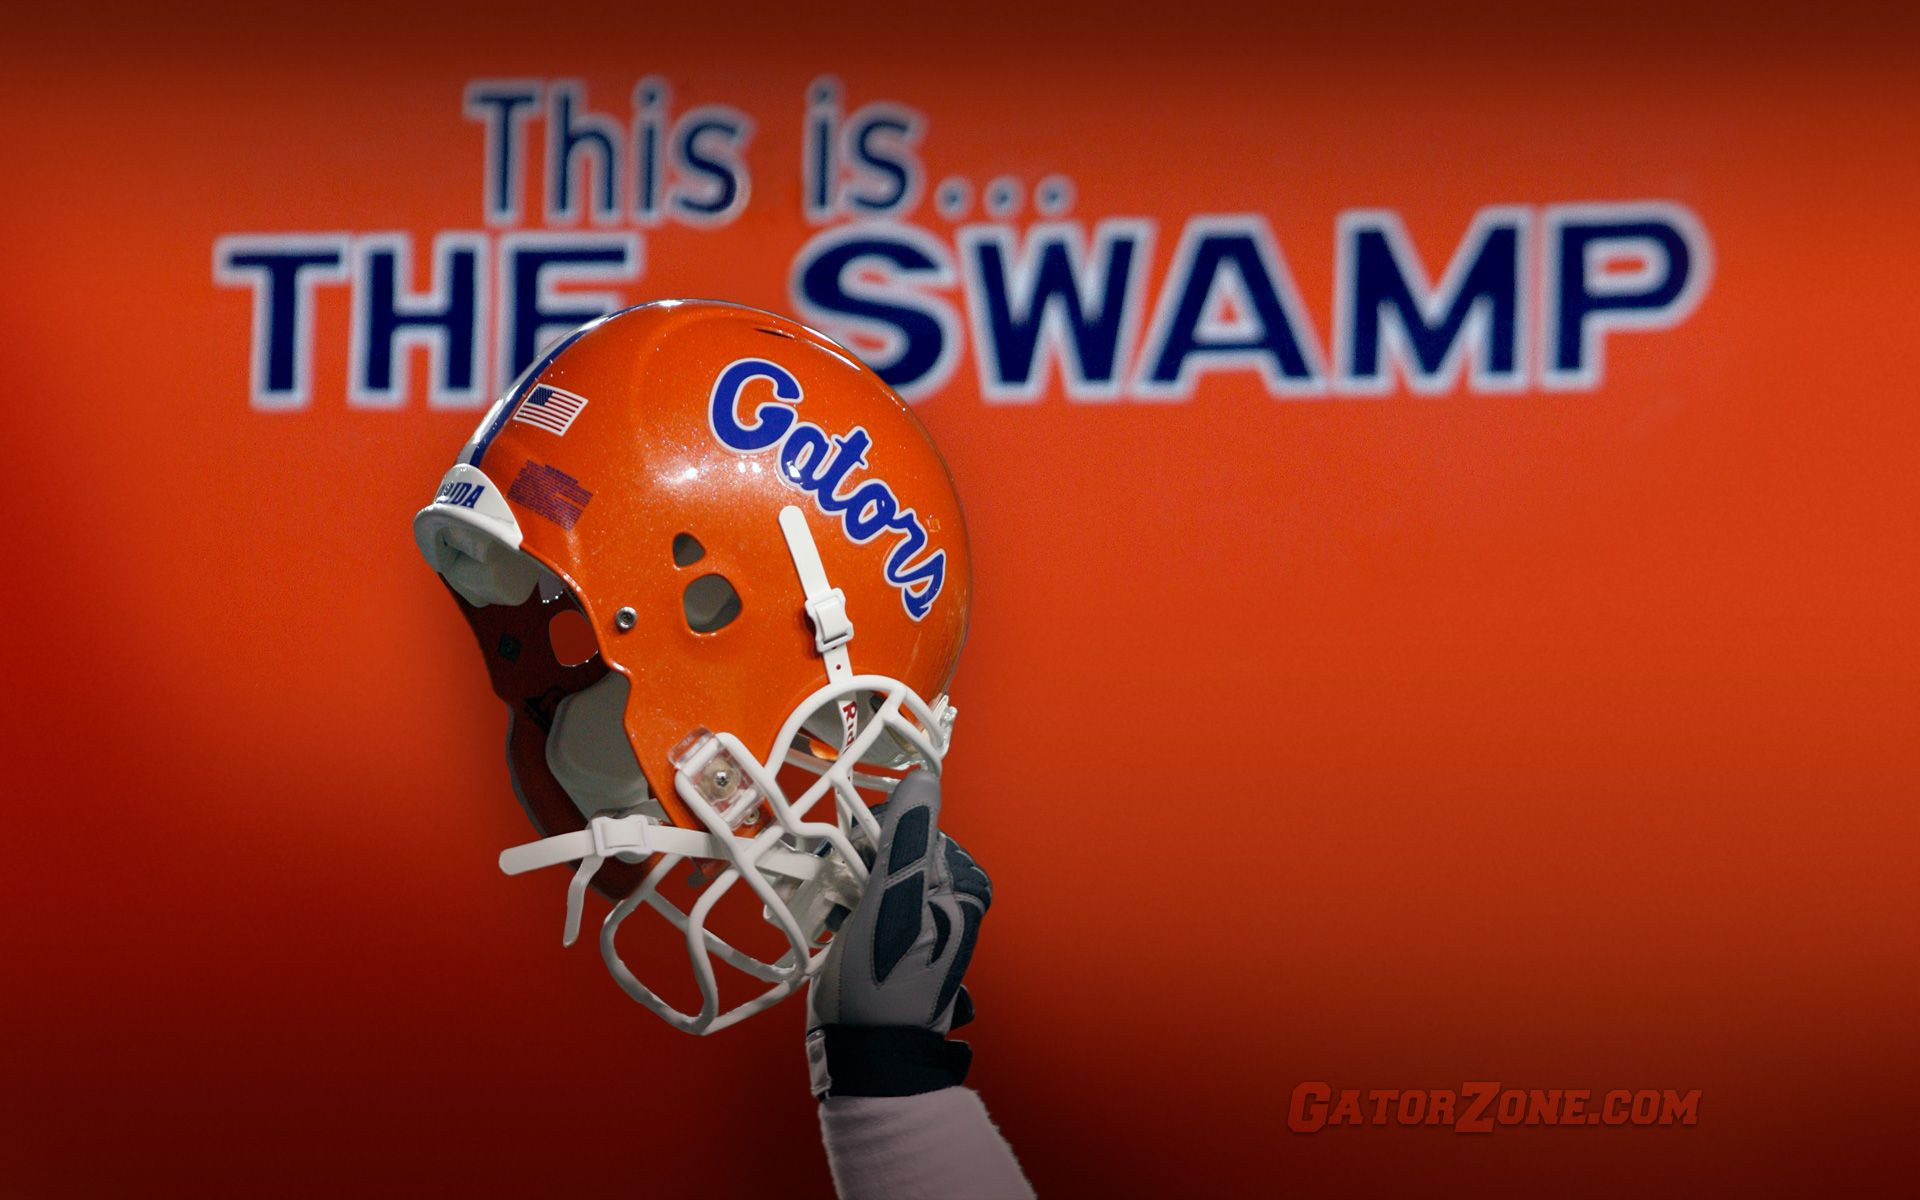 This Is The Swamp With Images Gators Football Florida Gators Wallpaper Florida Gators Football